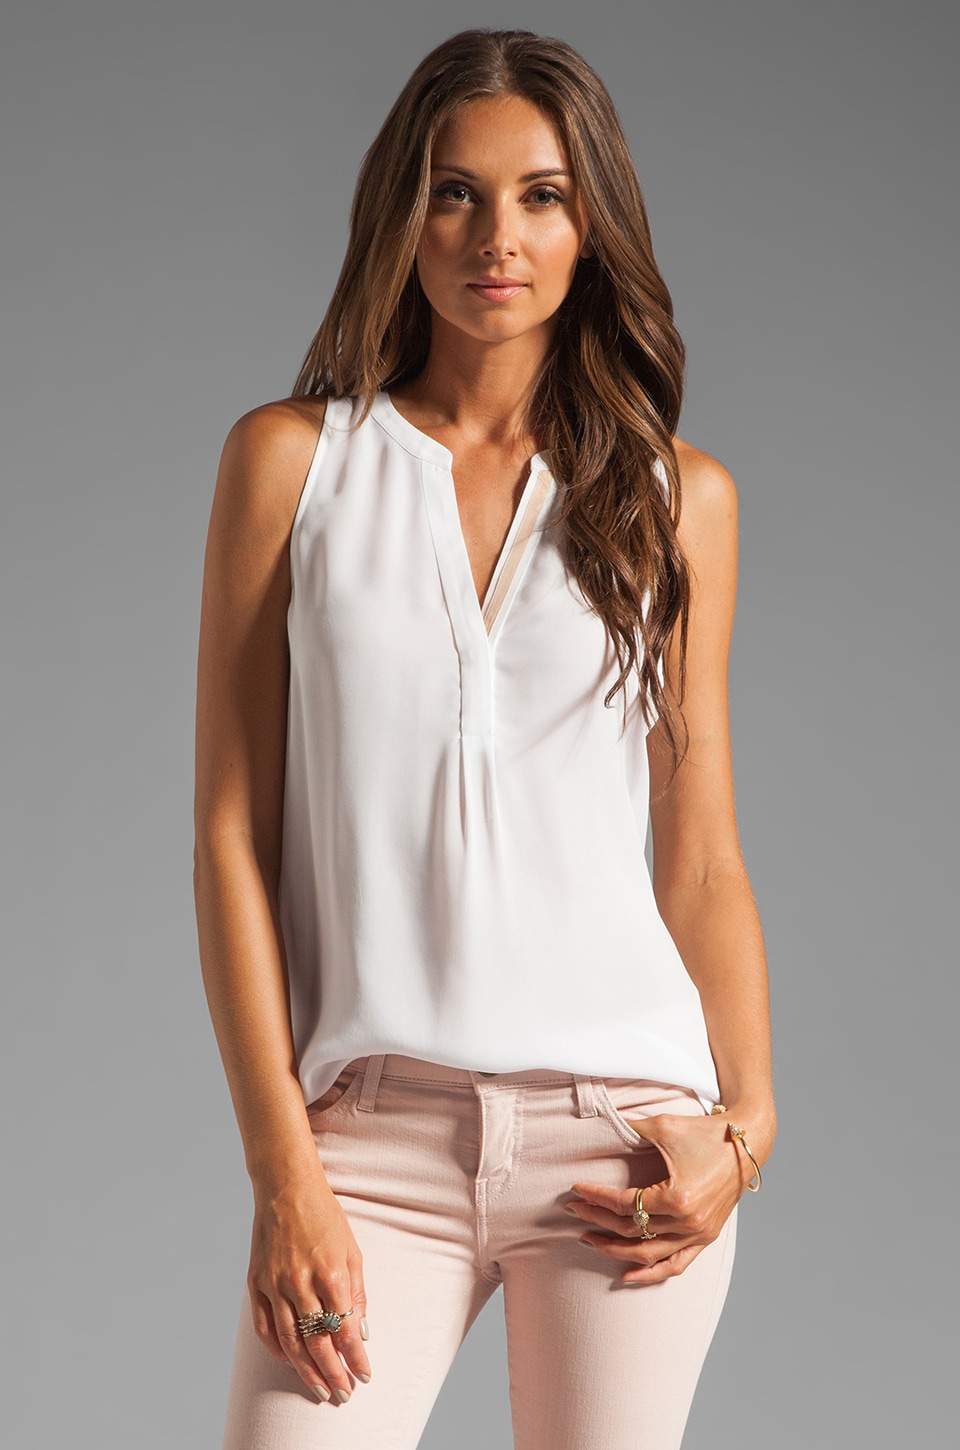 Joie Aruna Contrast Trim Tank in Porcelain/Dusty Pink